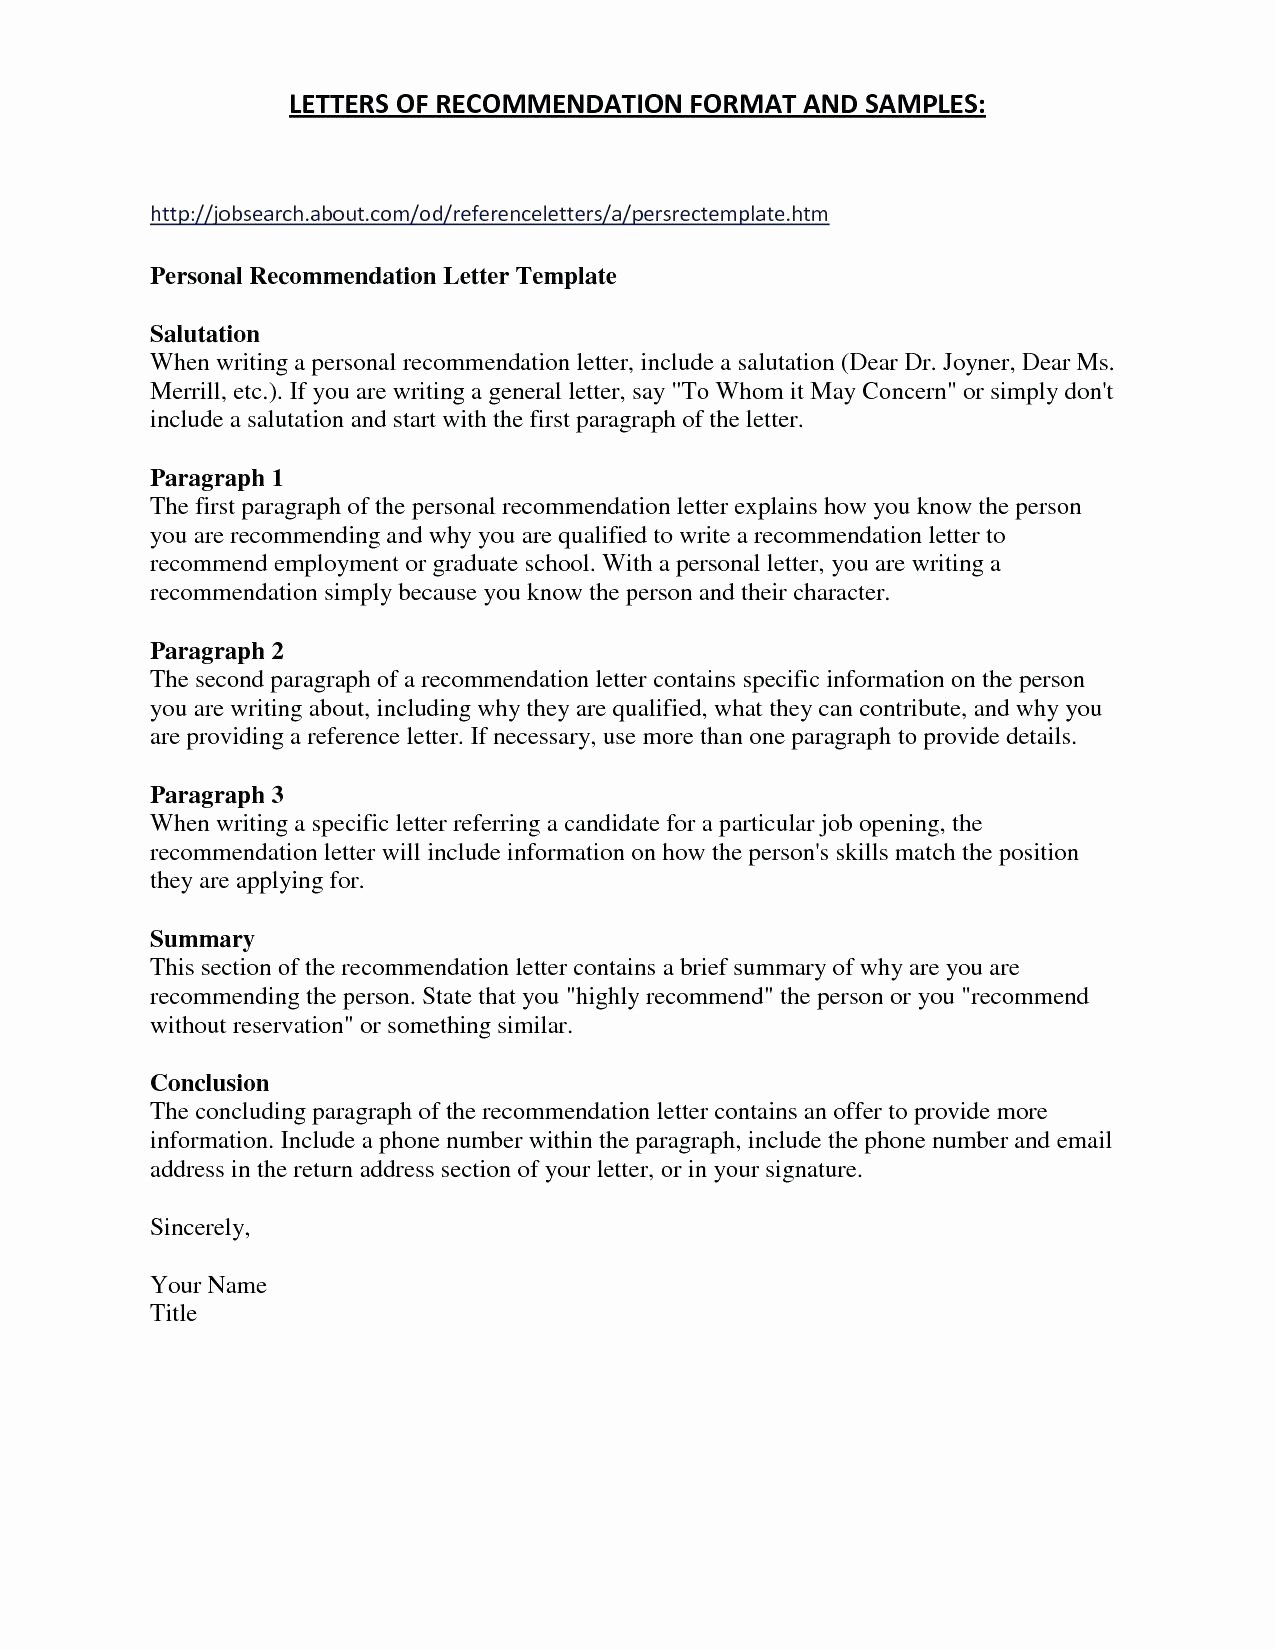 Nhs Letter Of Recommendation Template Awesome Nhs Letter Re Mendation Template Examples